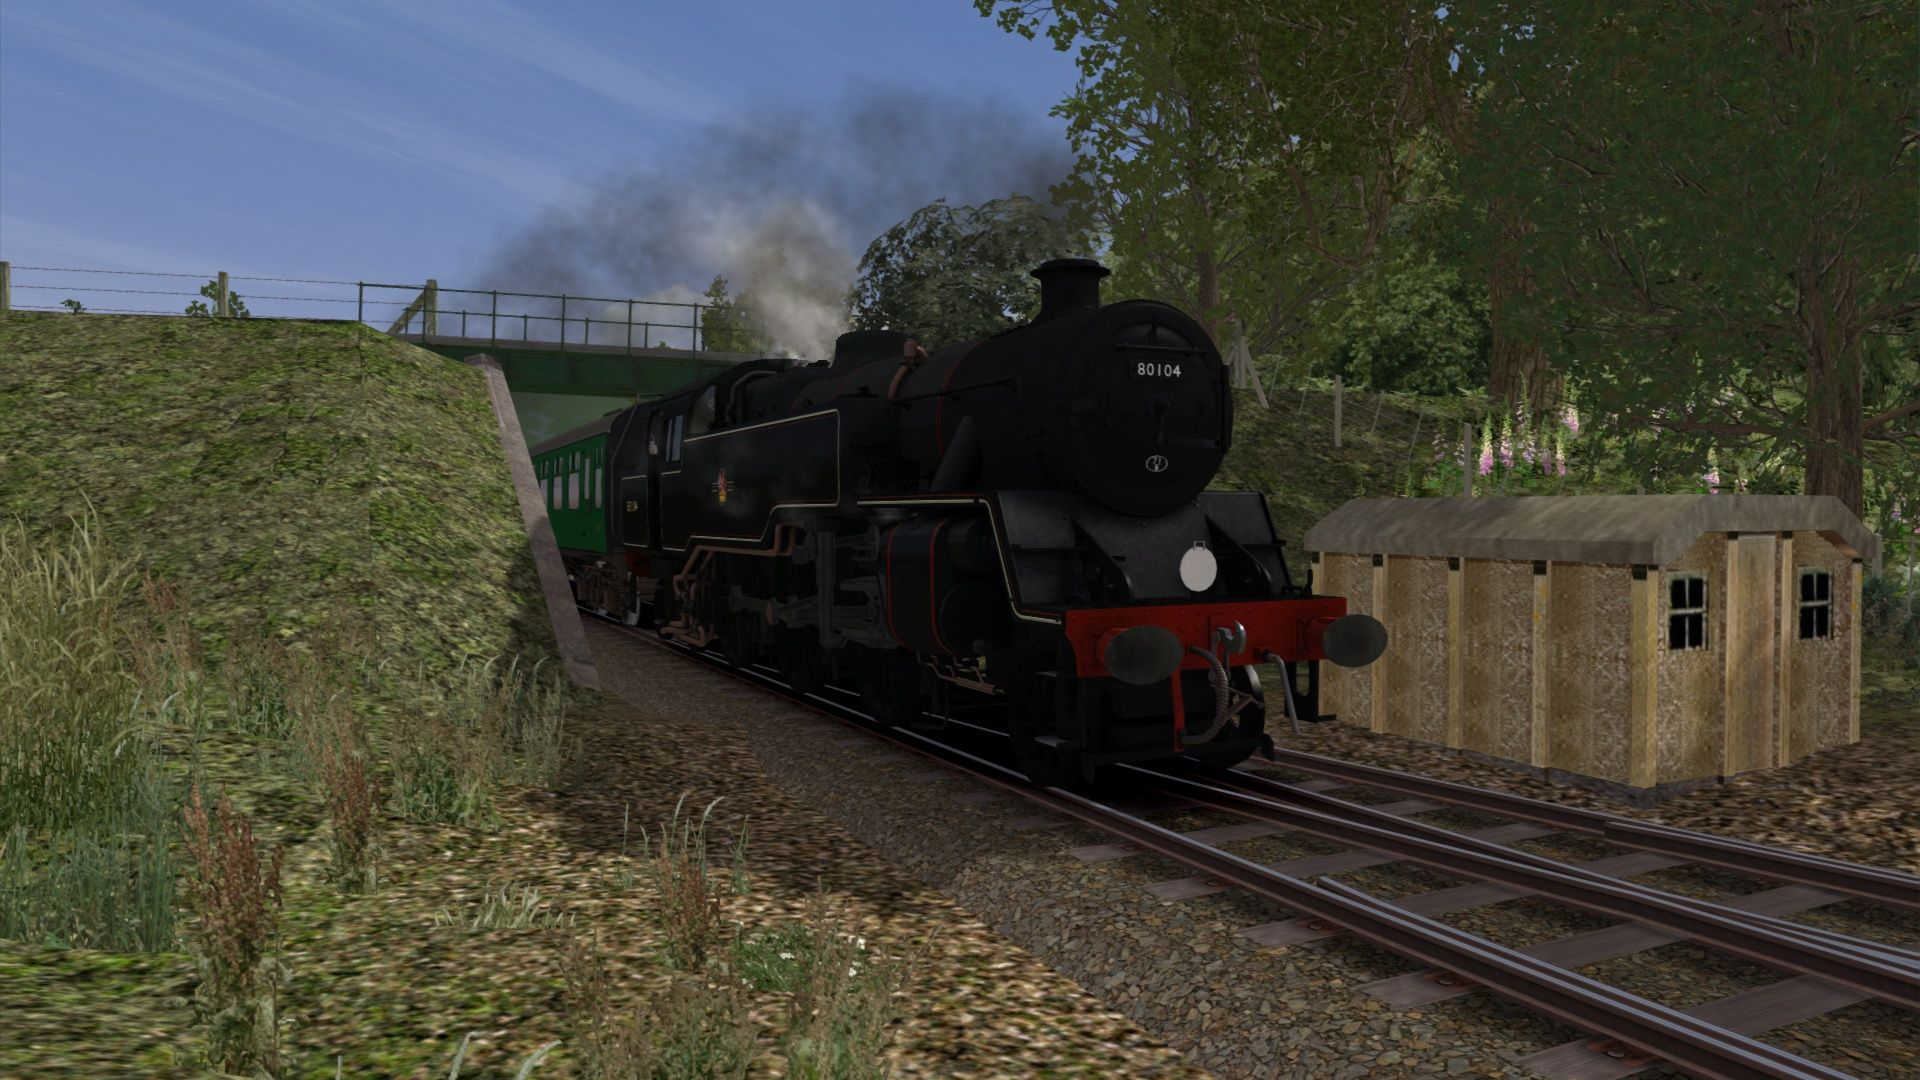 Screenshot_Swanage Railway_50.64433--2.06119_16-23-51